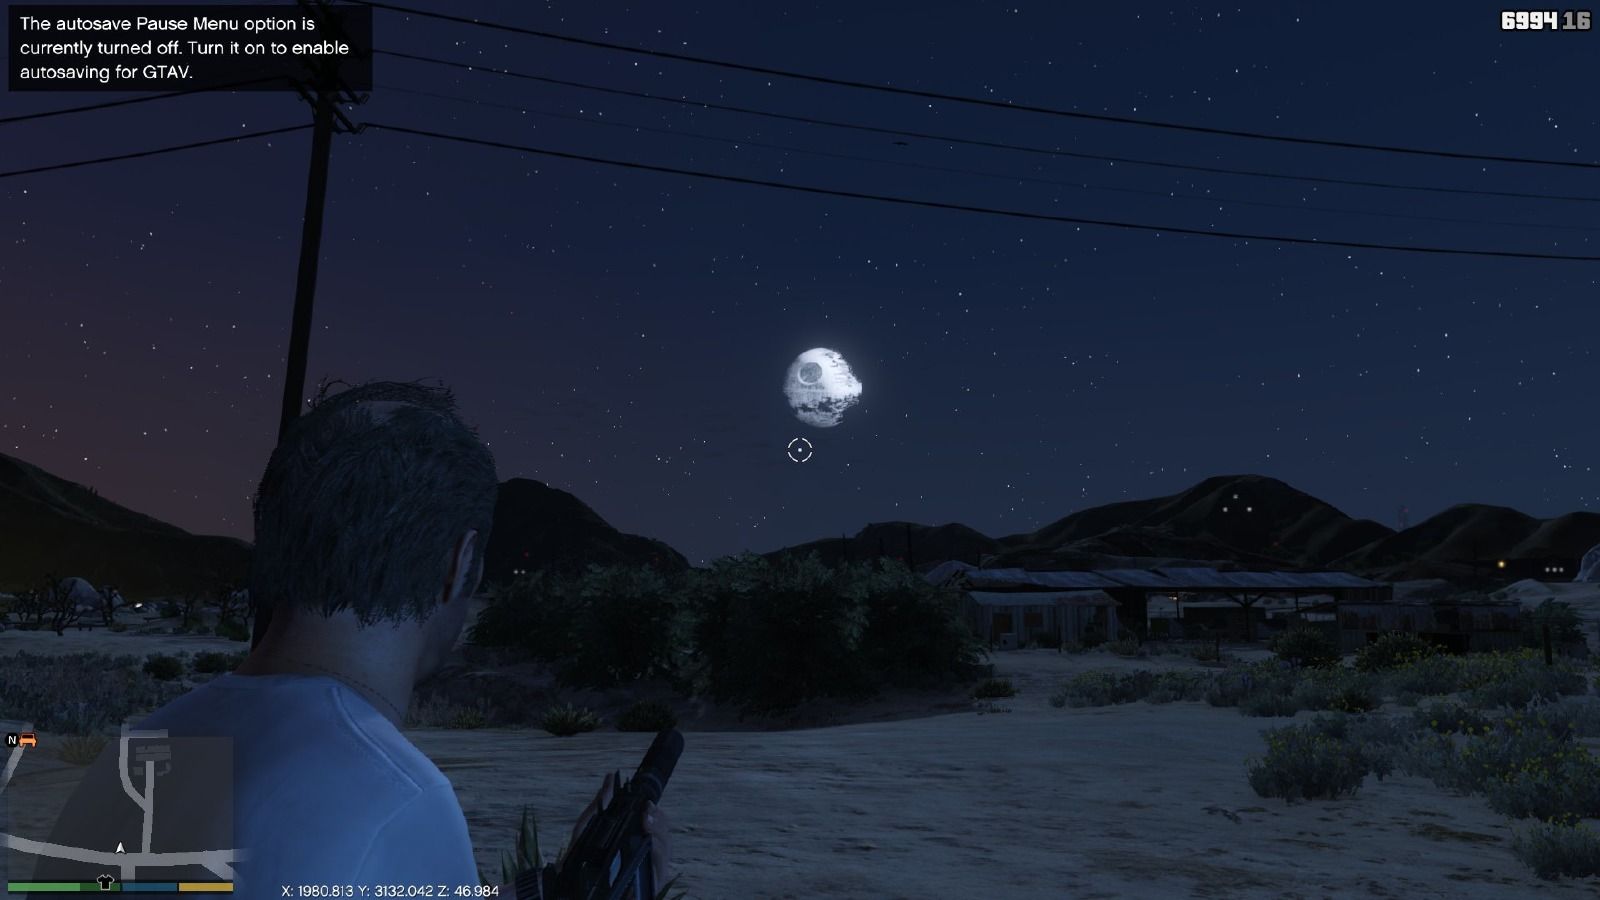 DeathStar Moon - GTA5